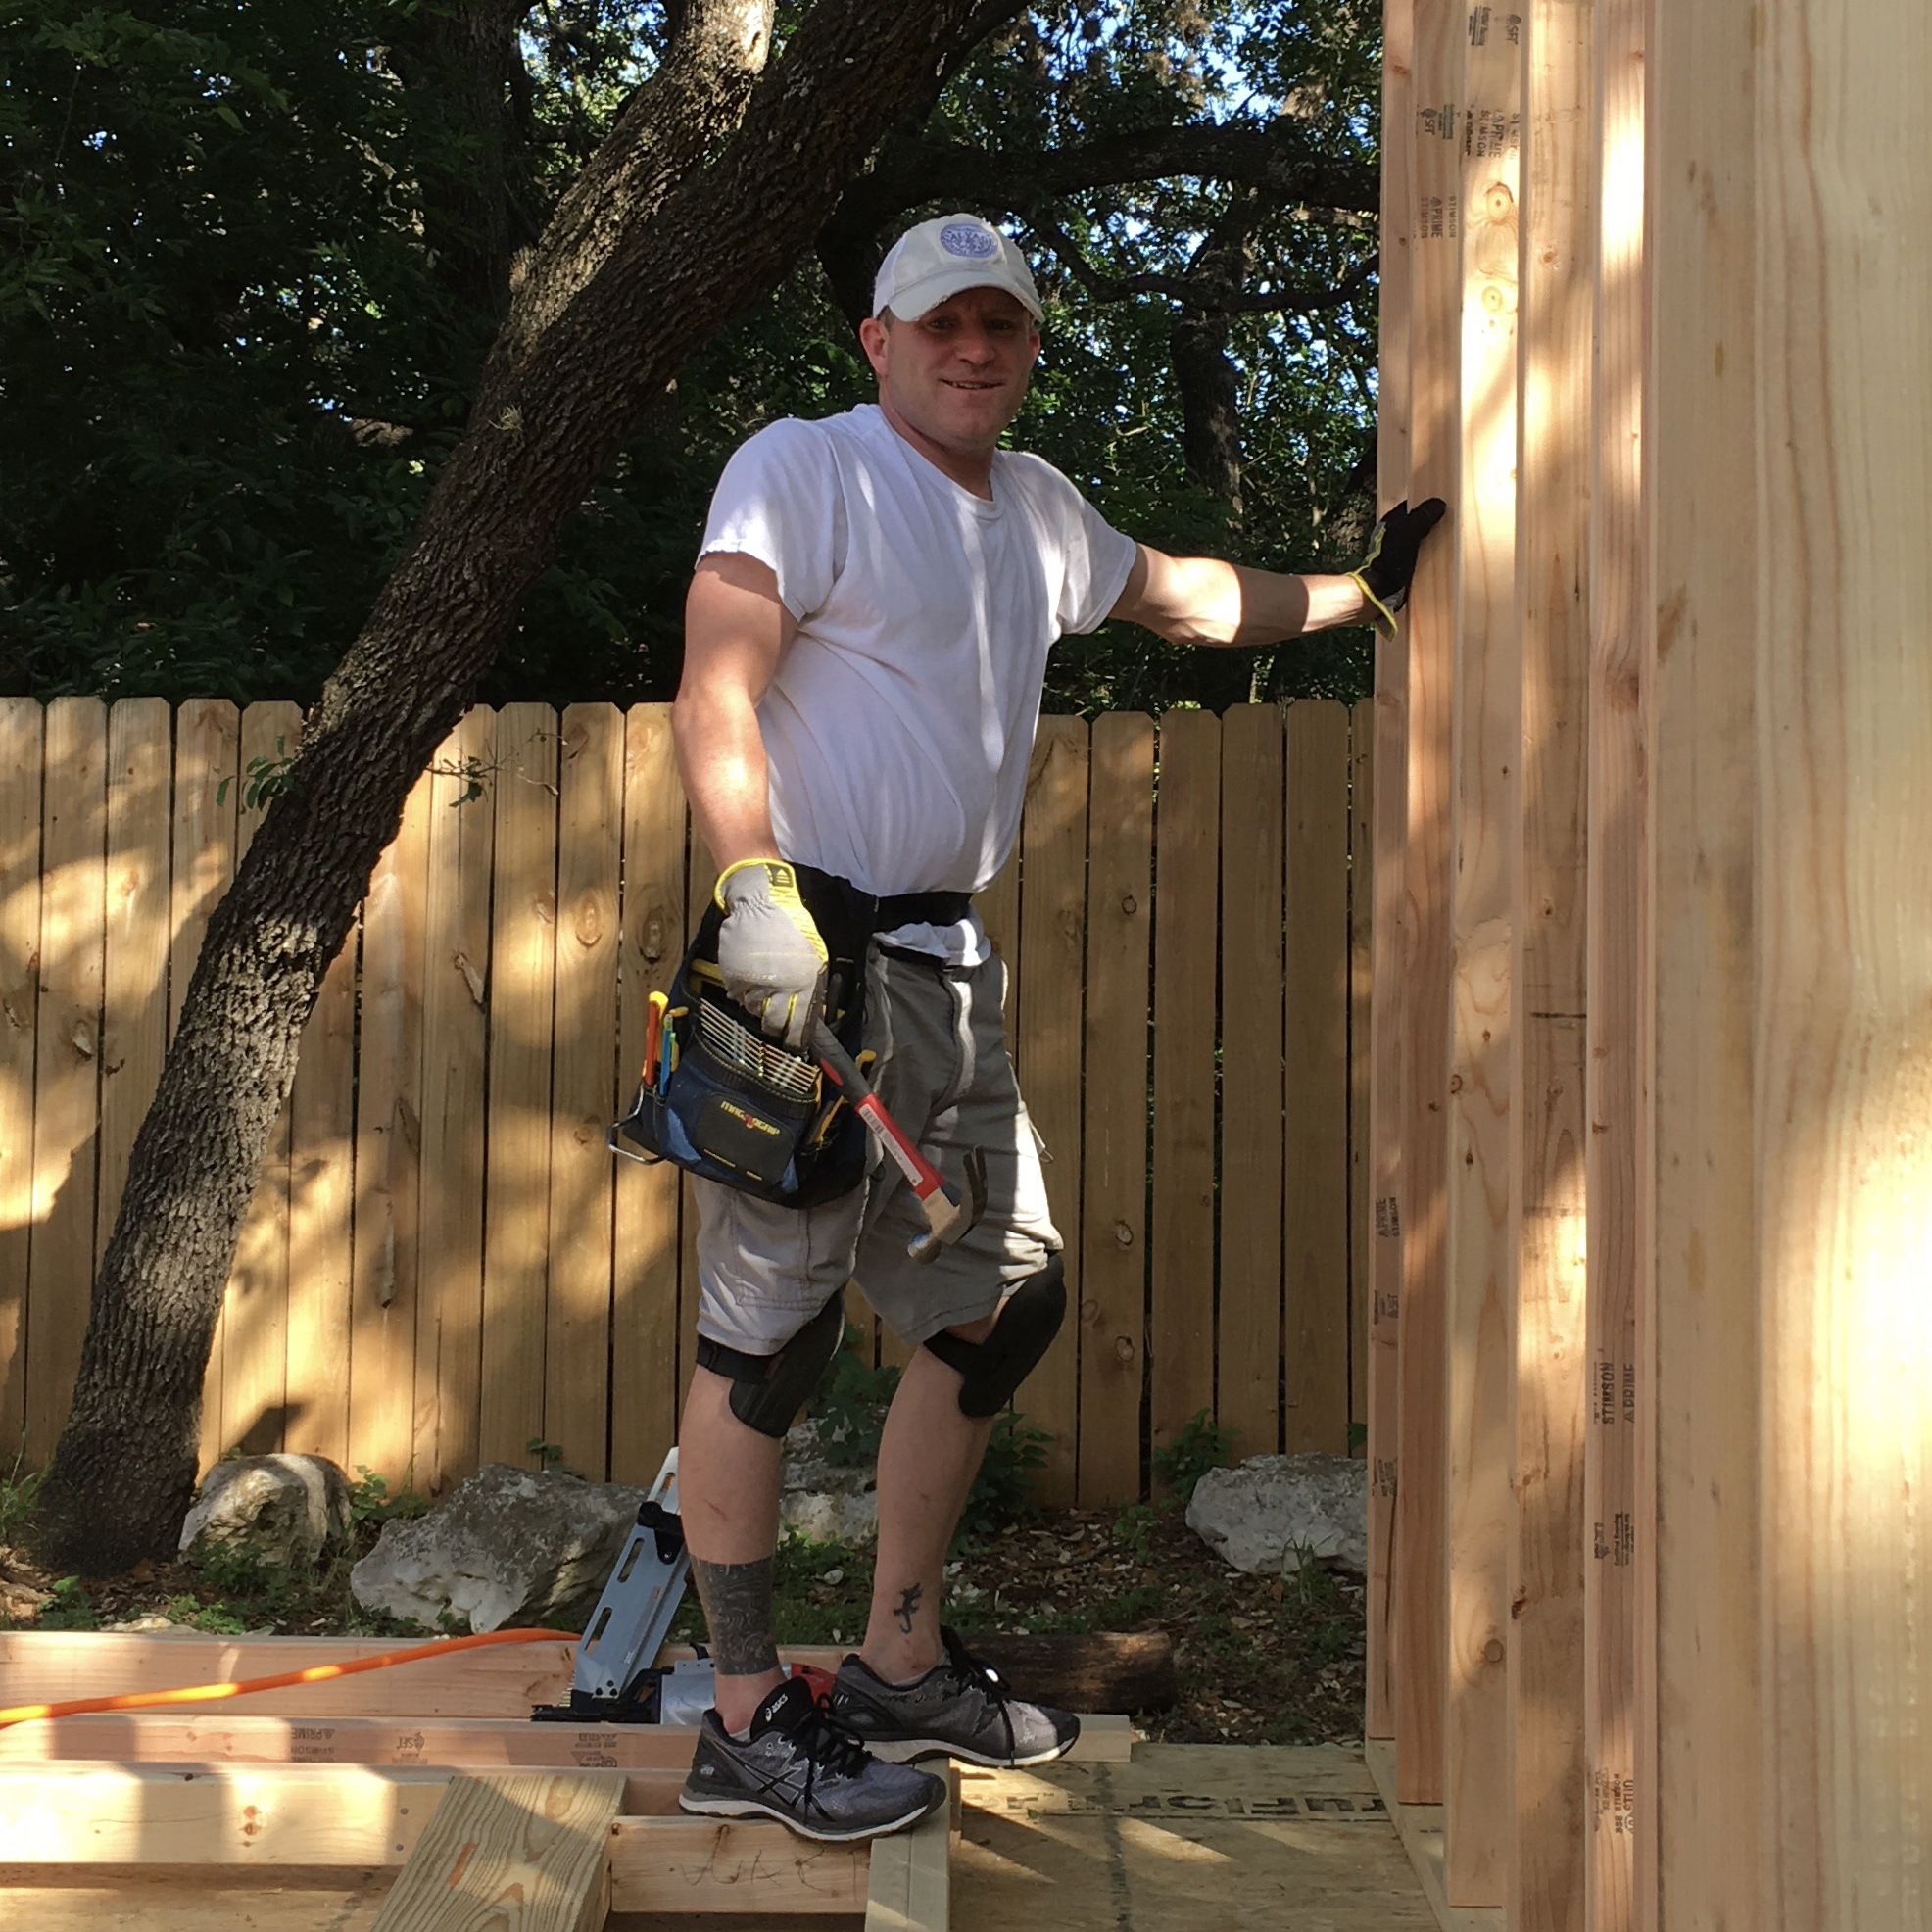 Building a tiny house in our back yard - Austin, Texas